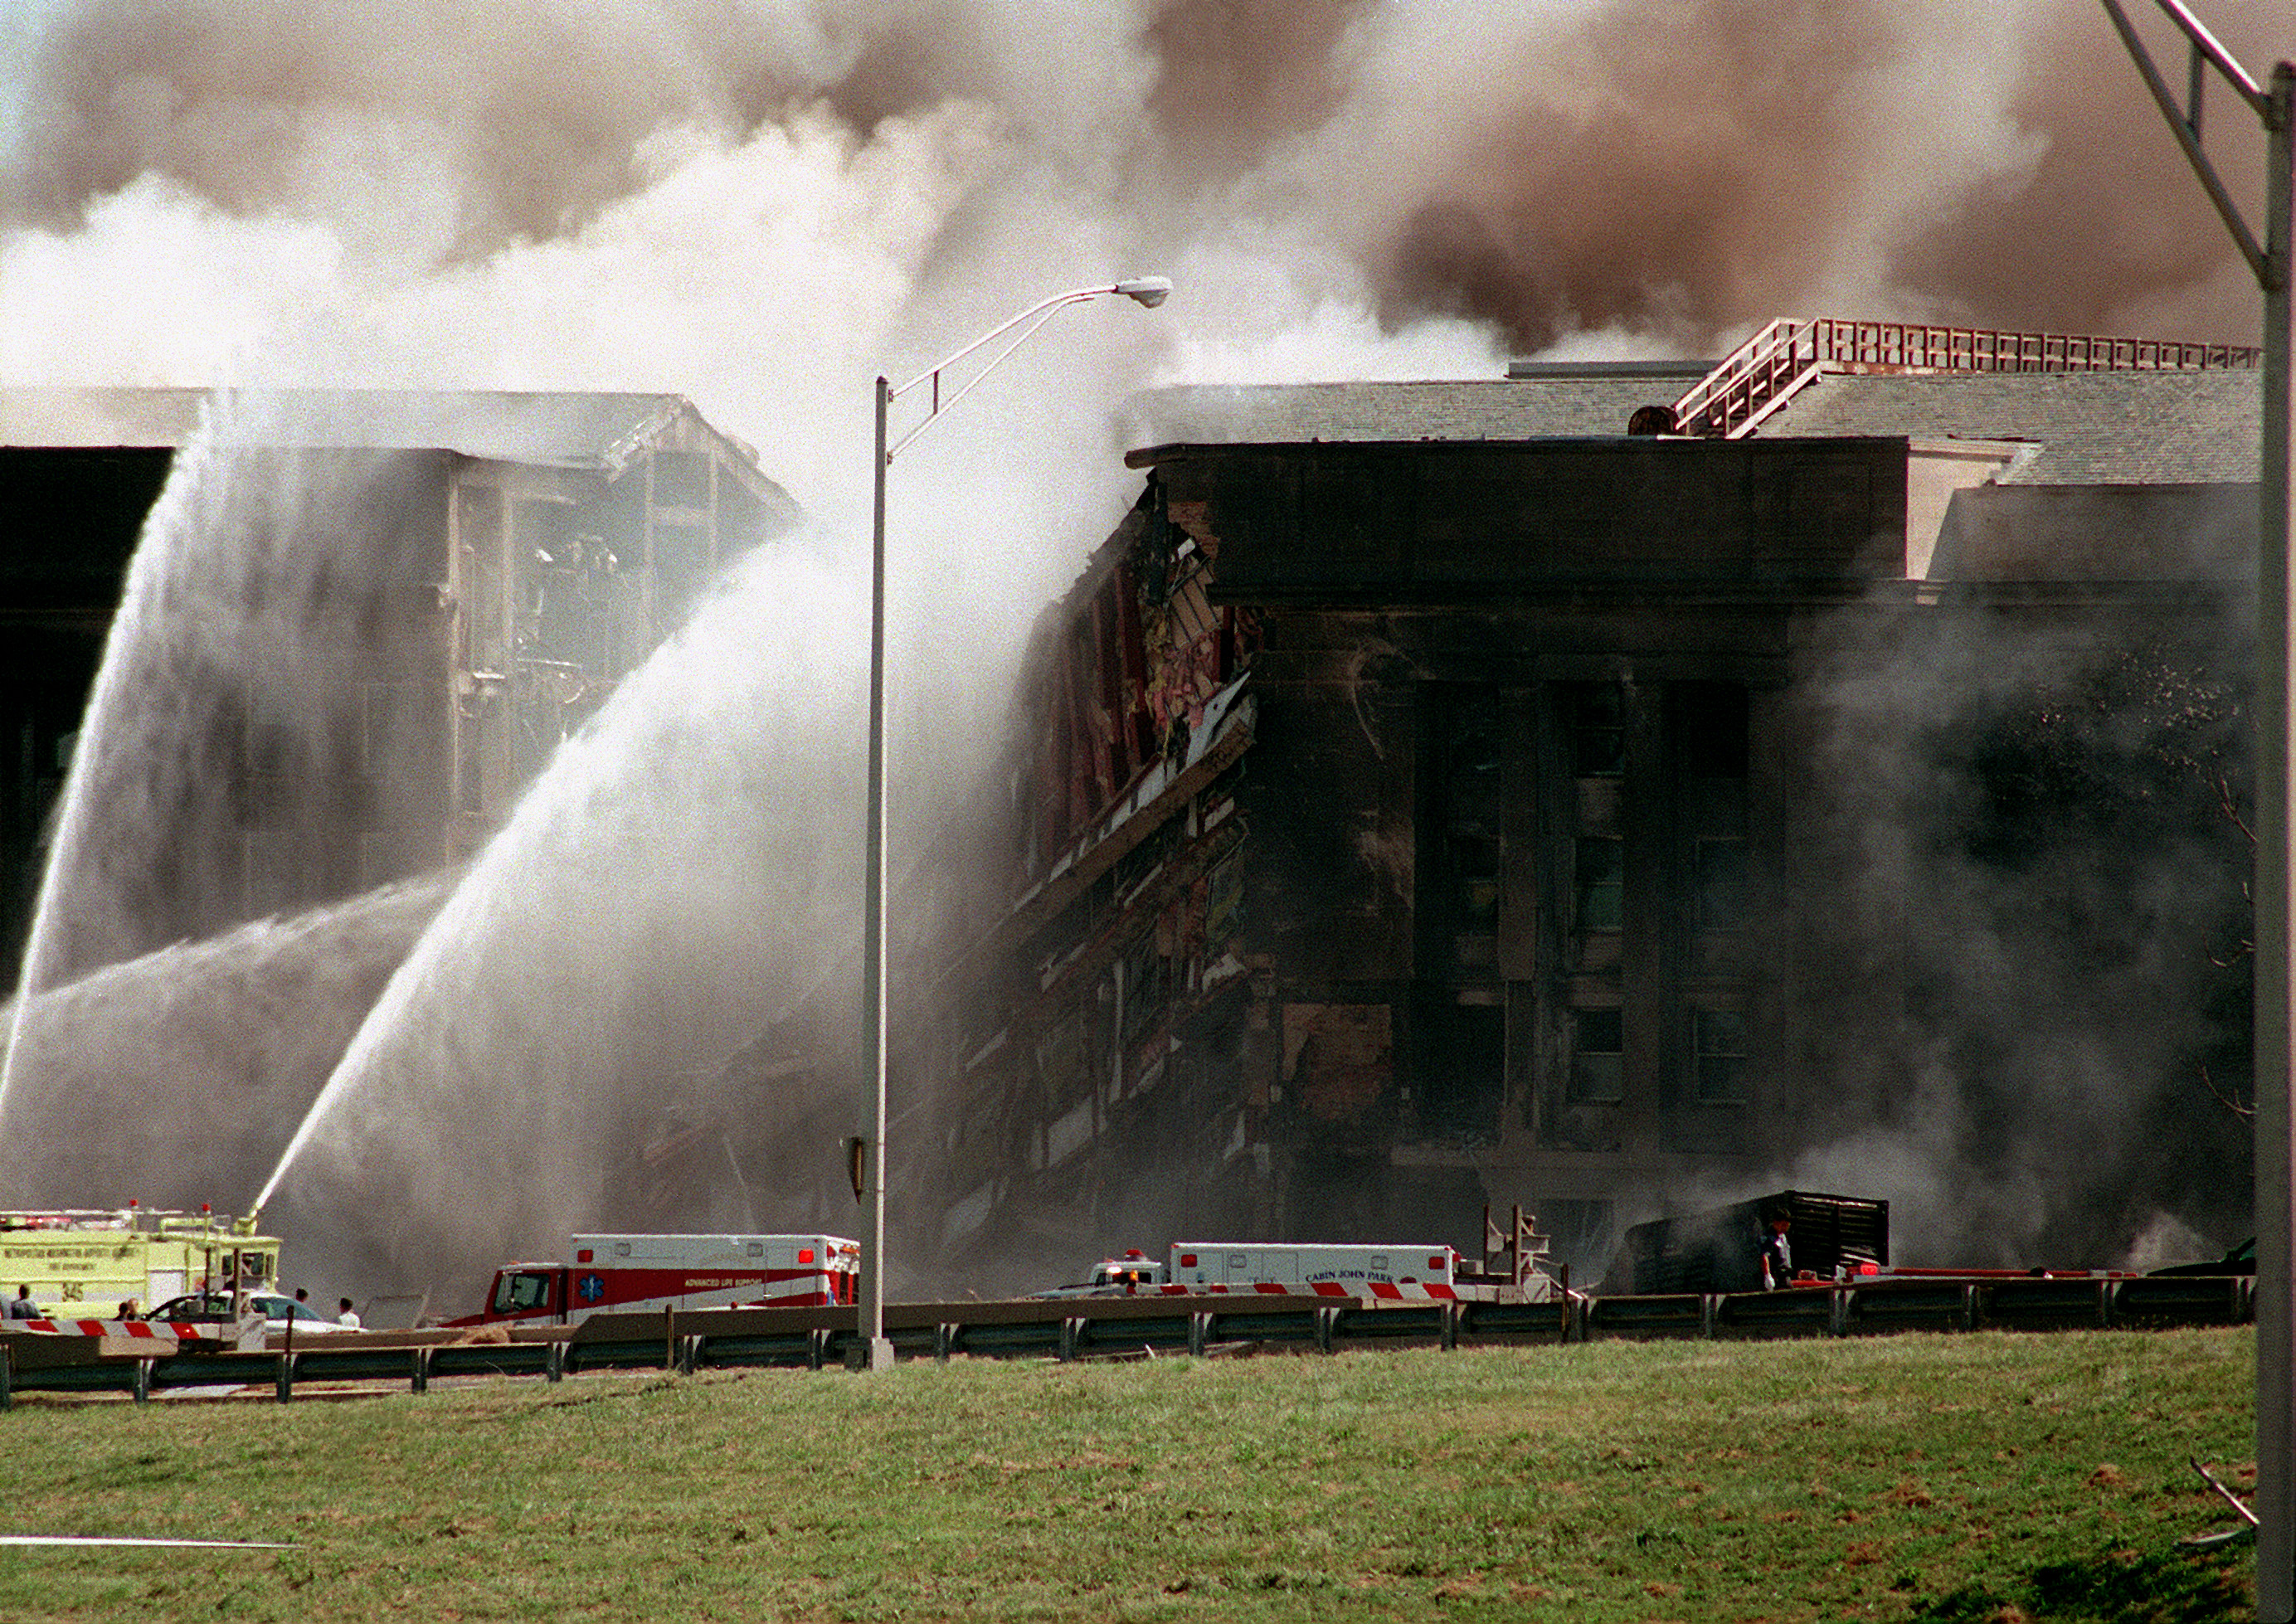 Terrorist Attacks Wikipedia: File:Firefighters Struggle To Contain The Fire, After The